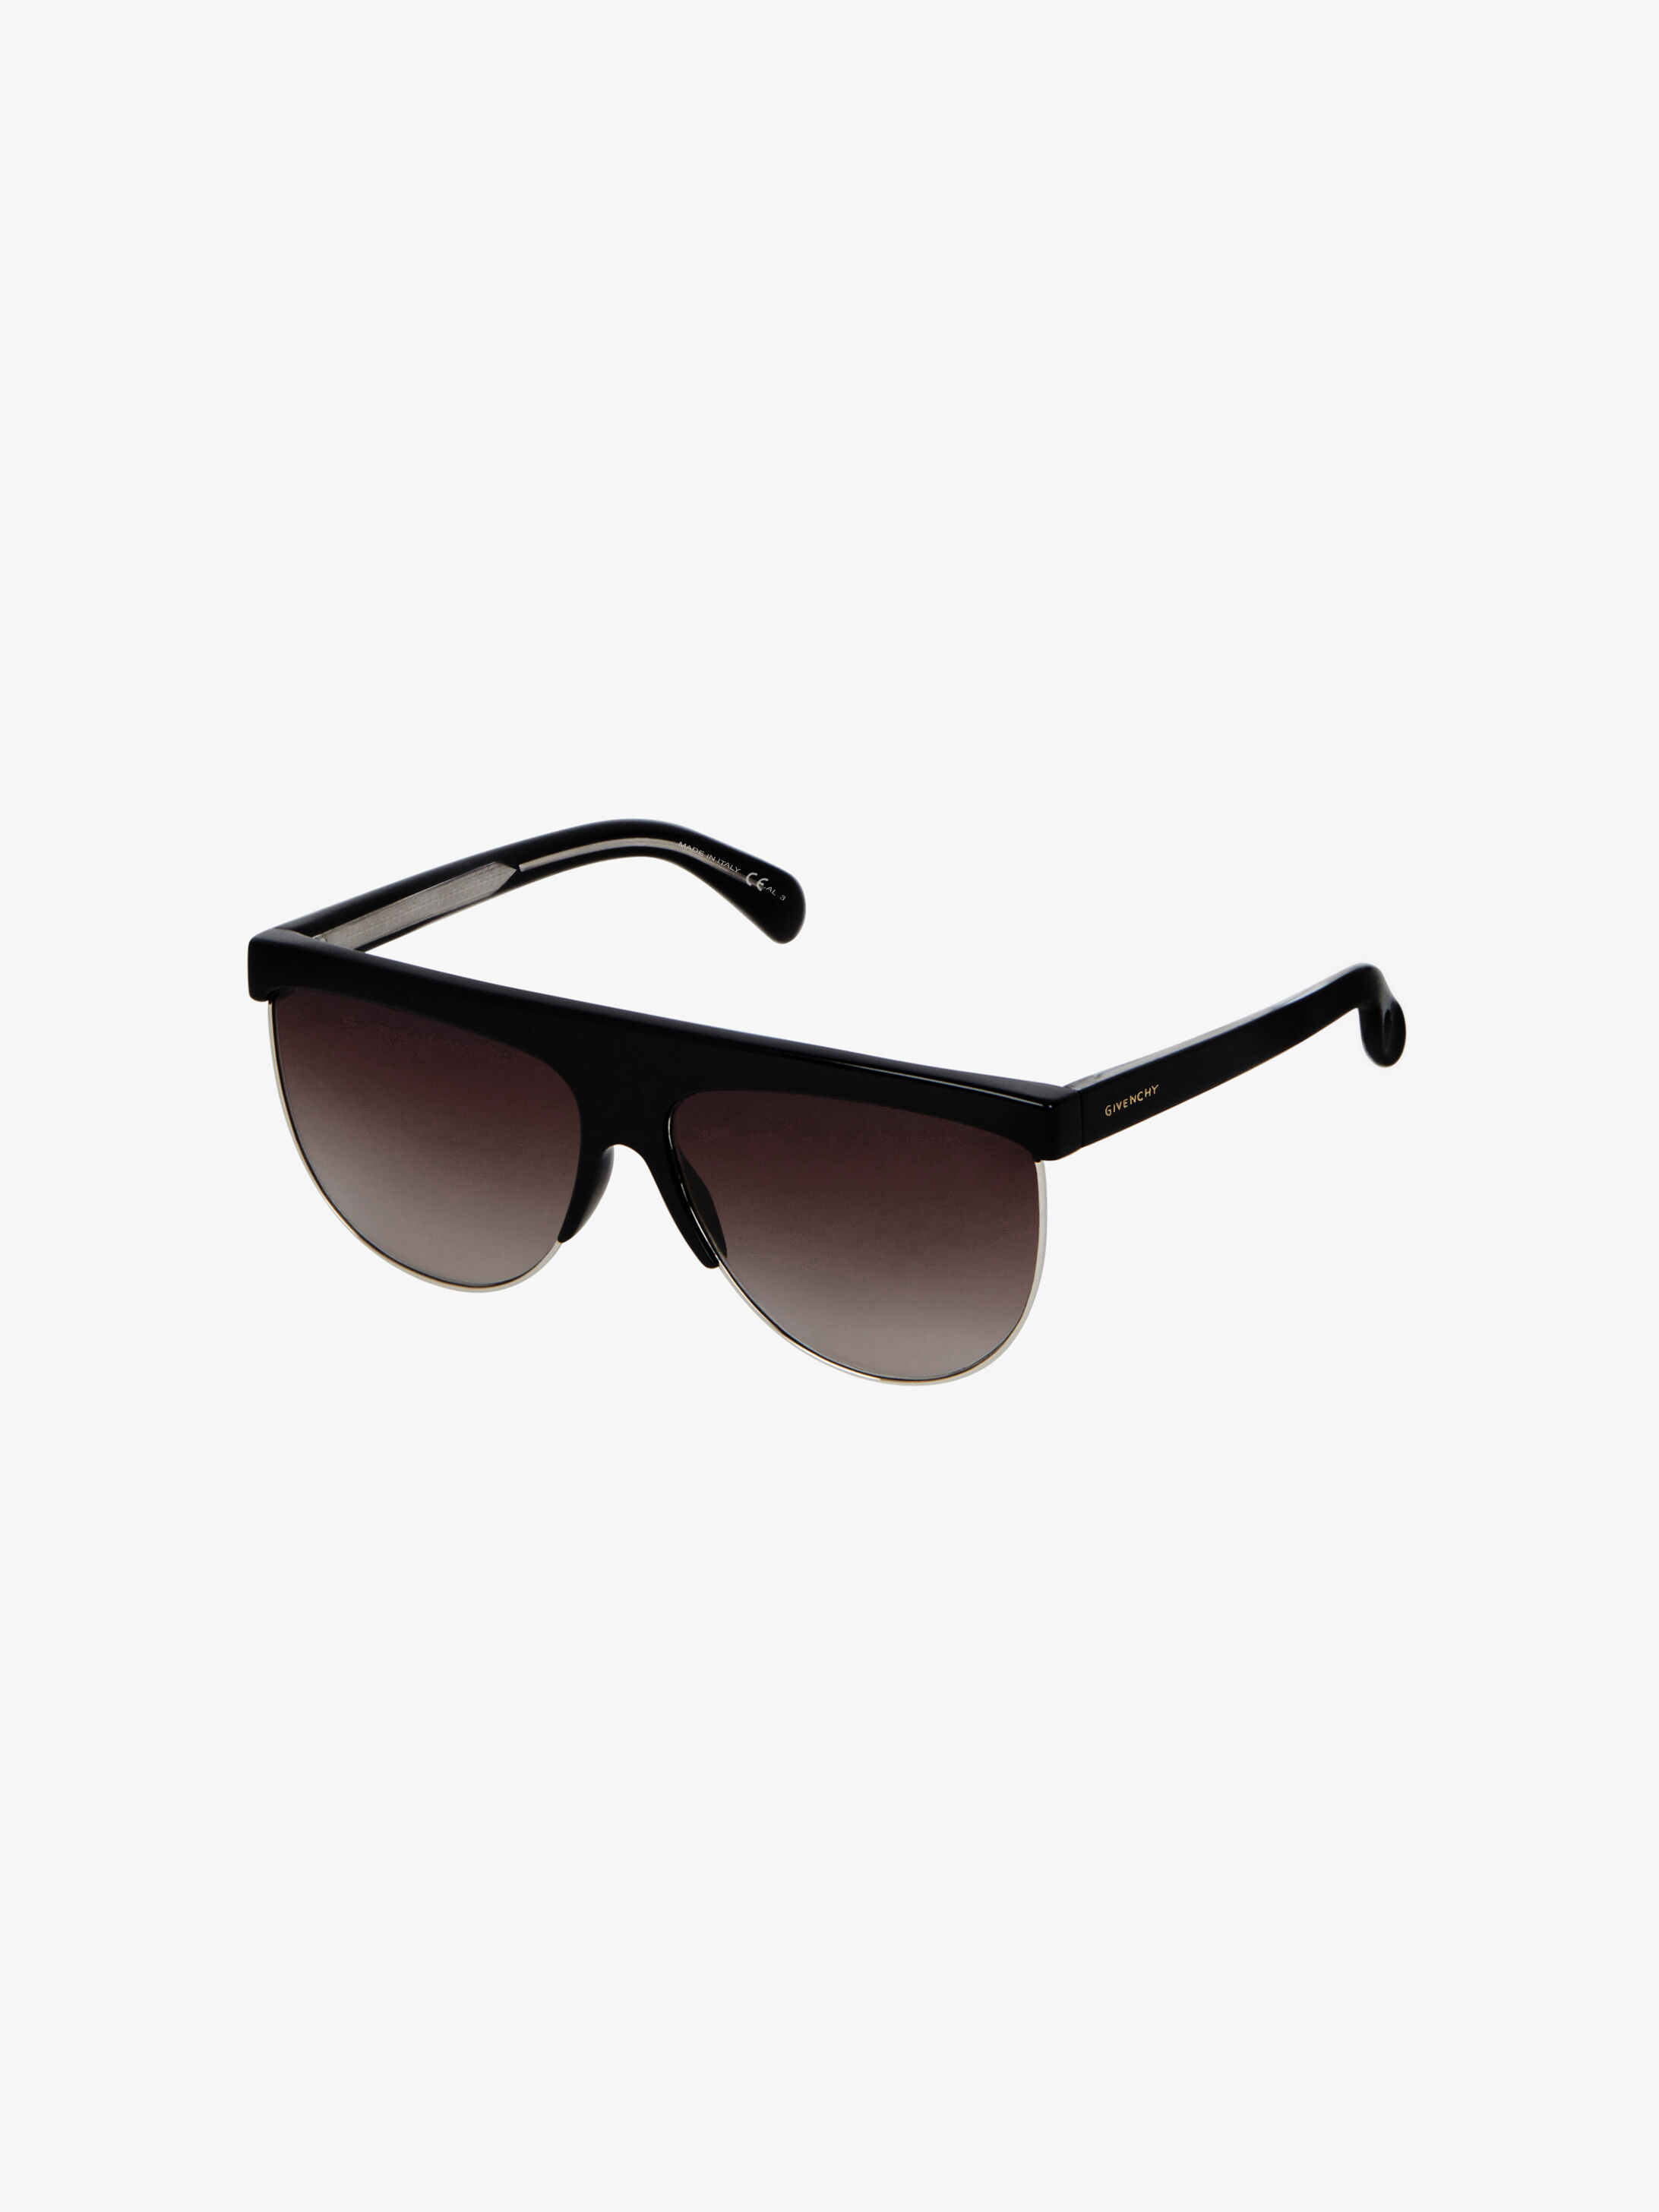 37465a411d Women s Sunglasses collection by Givenchy.